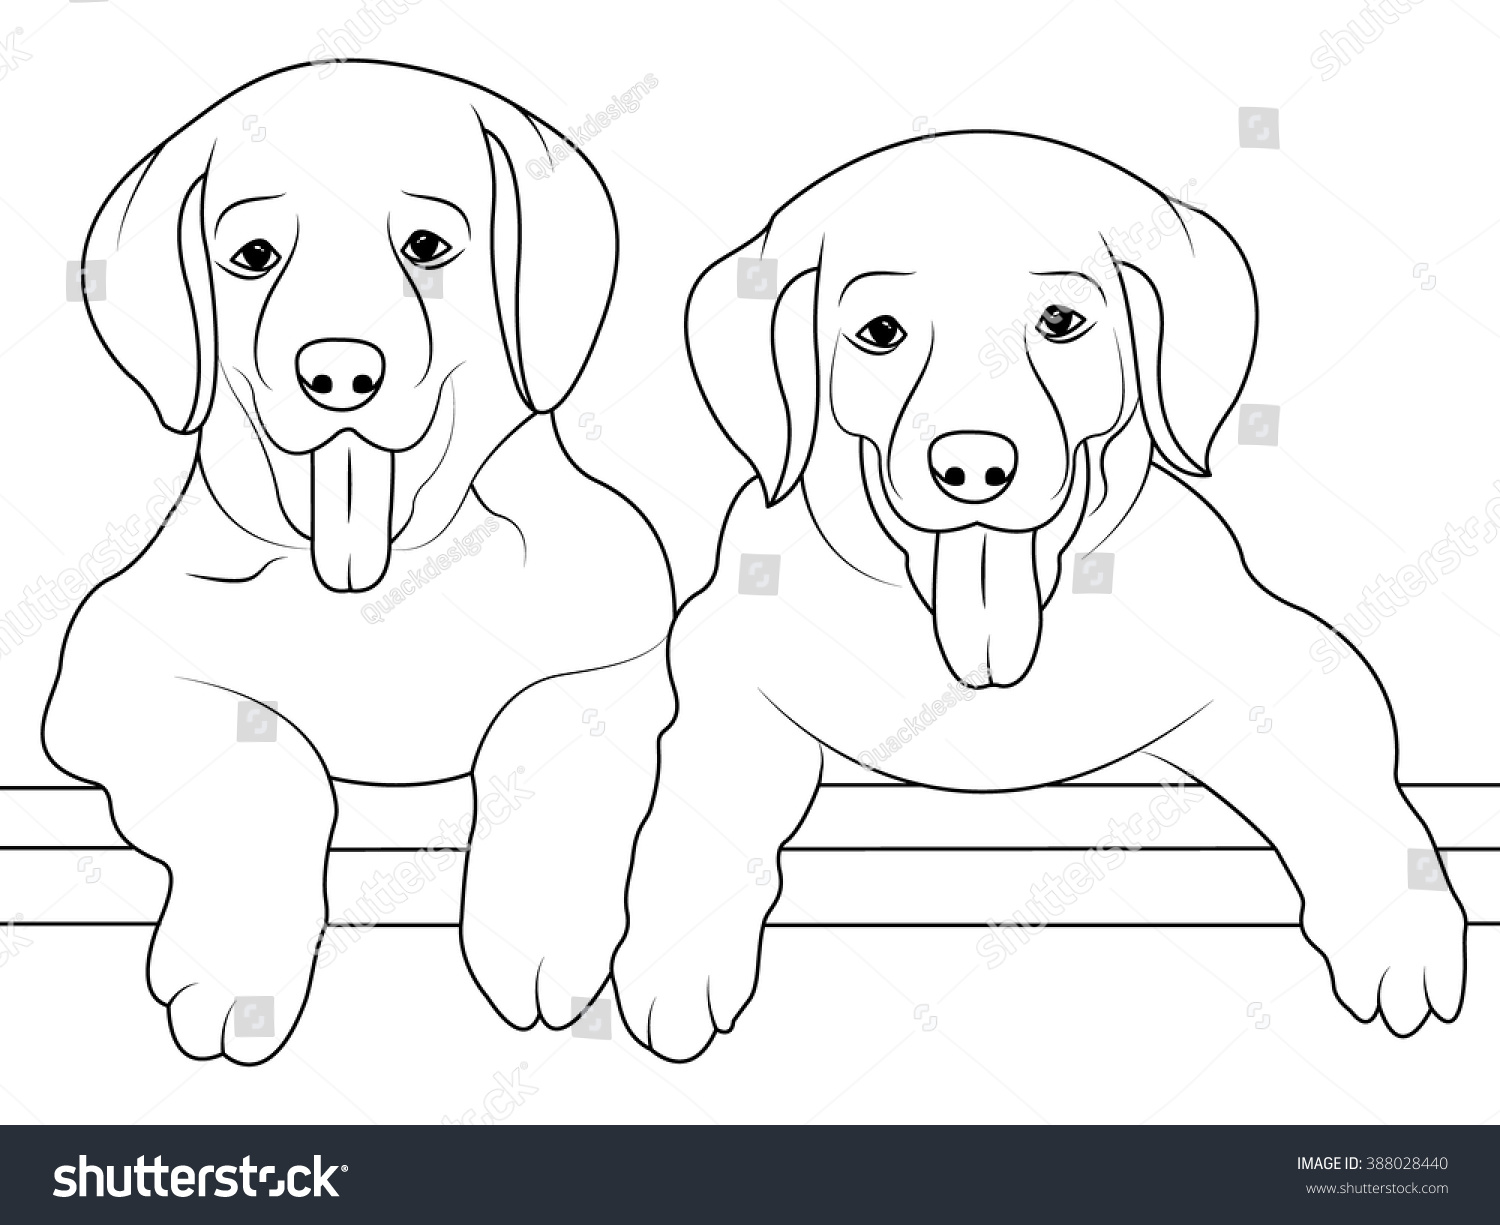 dog coloring page children coloring book stock vector 388028440